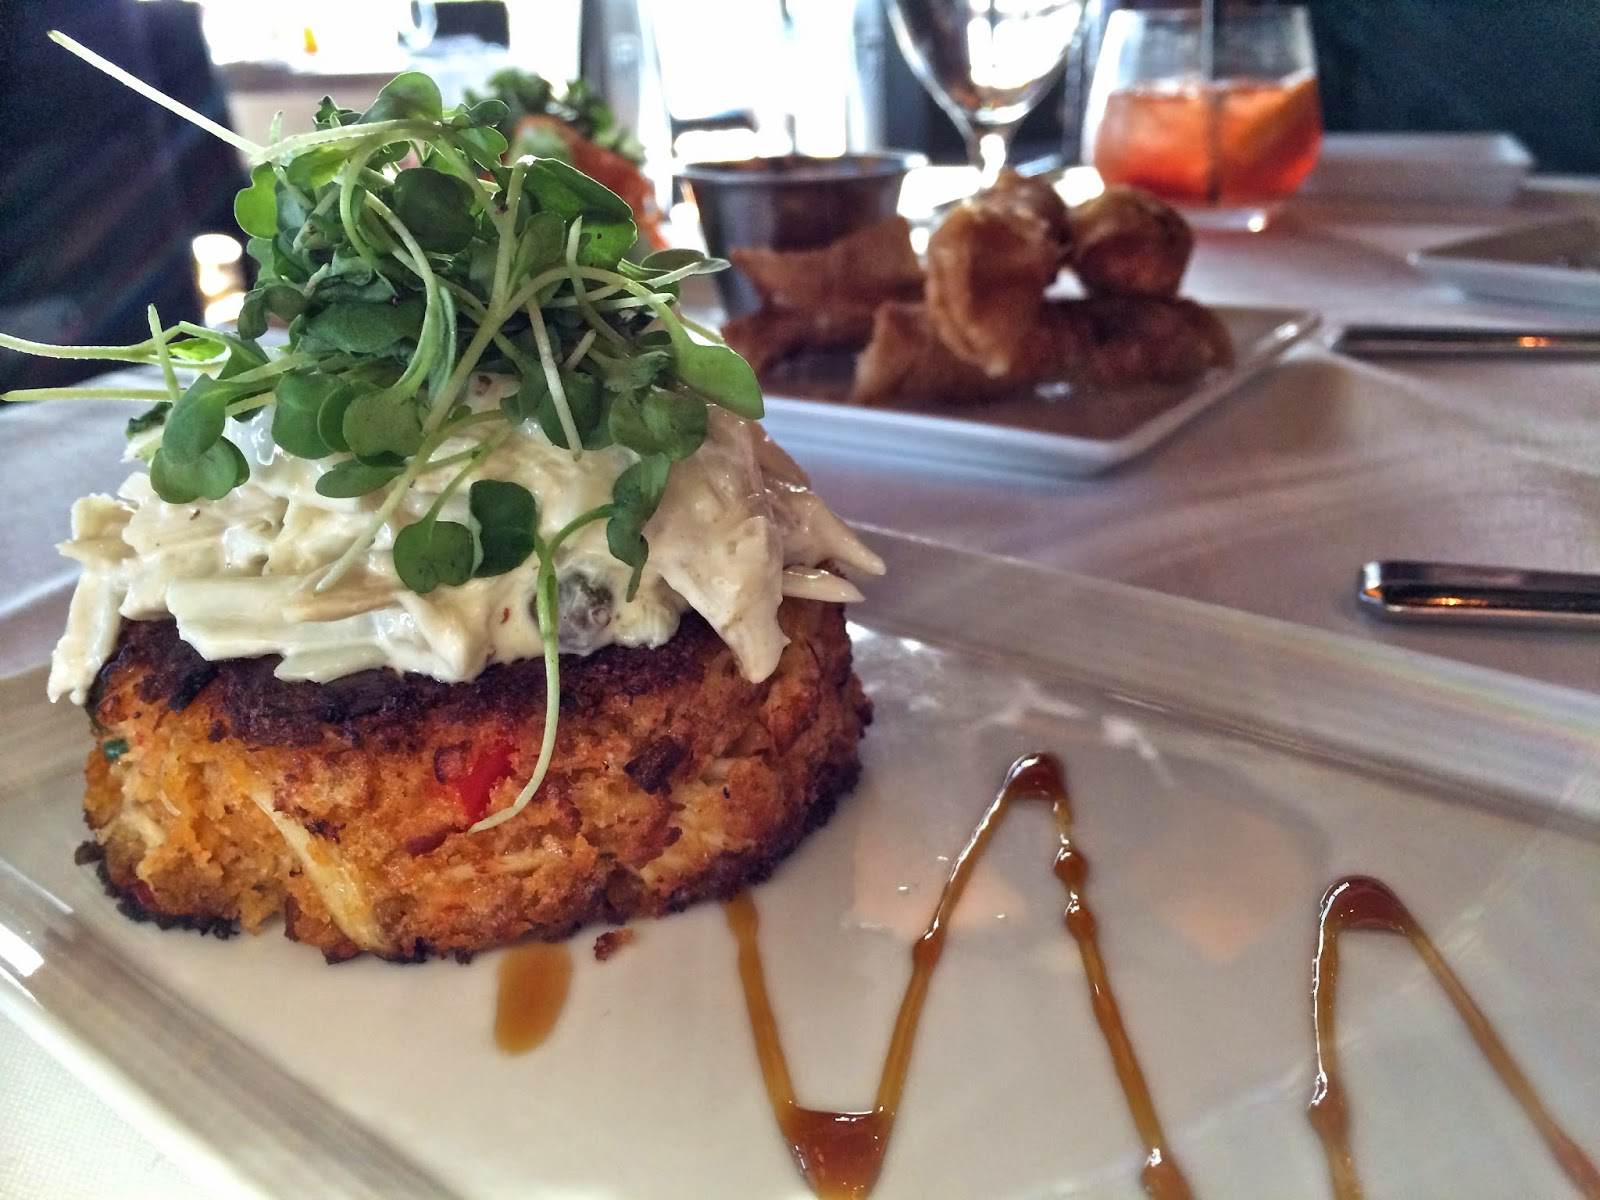 Jumbo Lump Crab Cake with Ground Mustard and Crab Ravigote